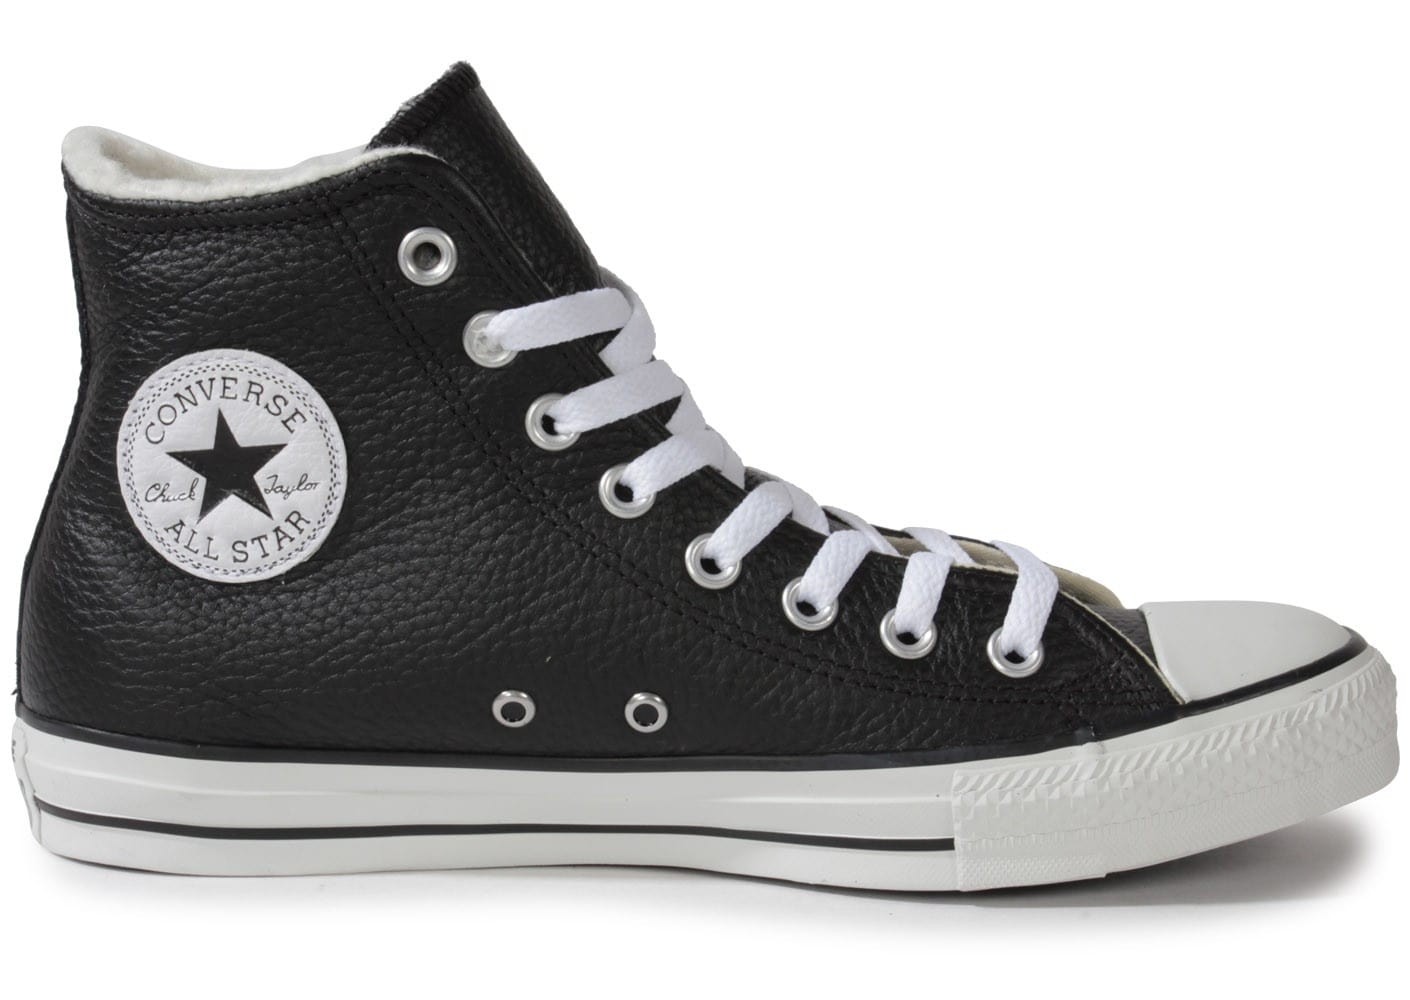 soldes converse chuck taylor all star montante cuir noire. Black Bedroom Furniture Sets. Home Design Ideas